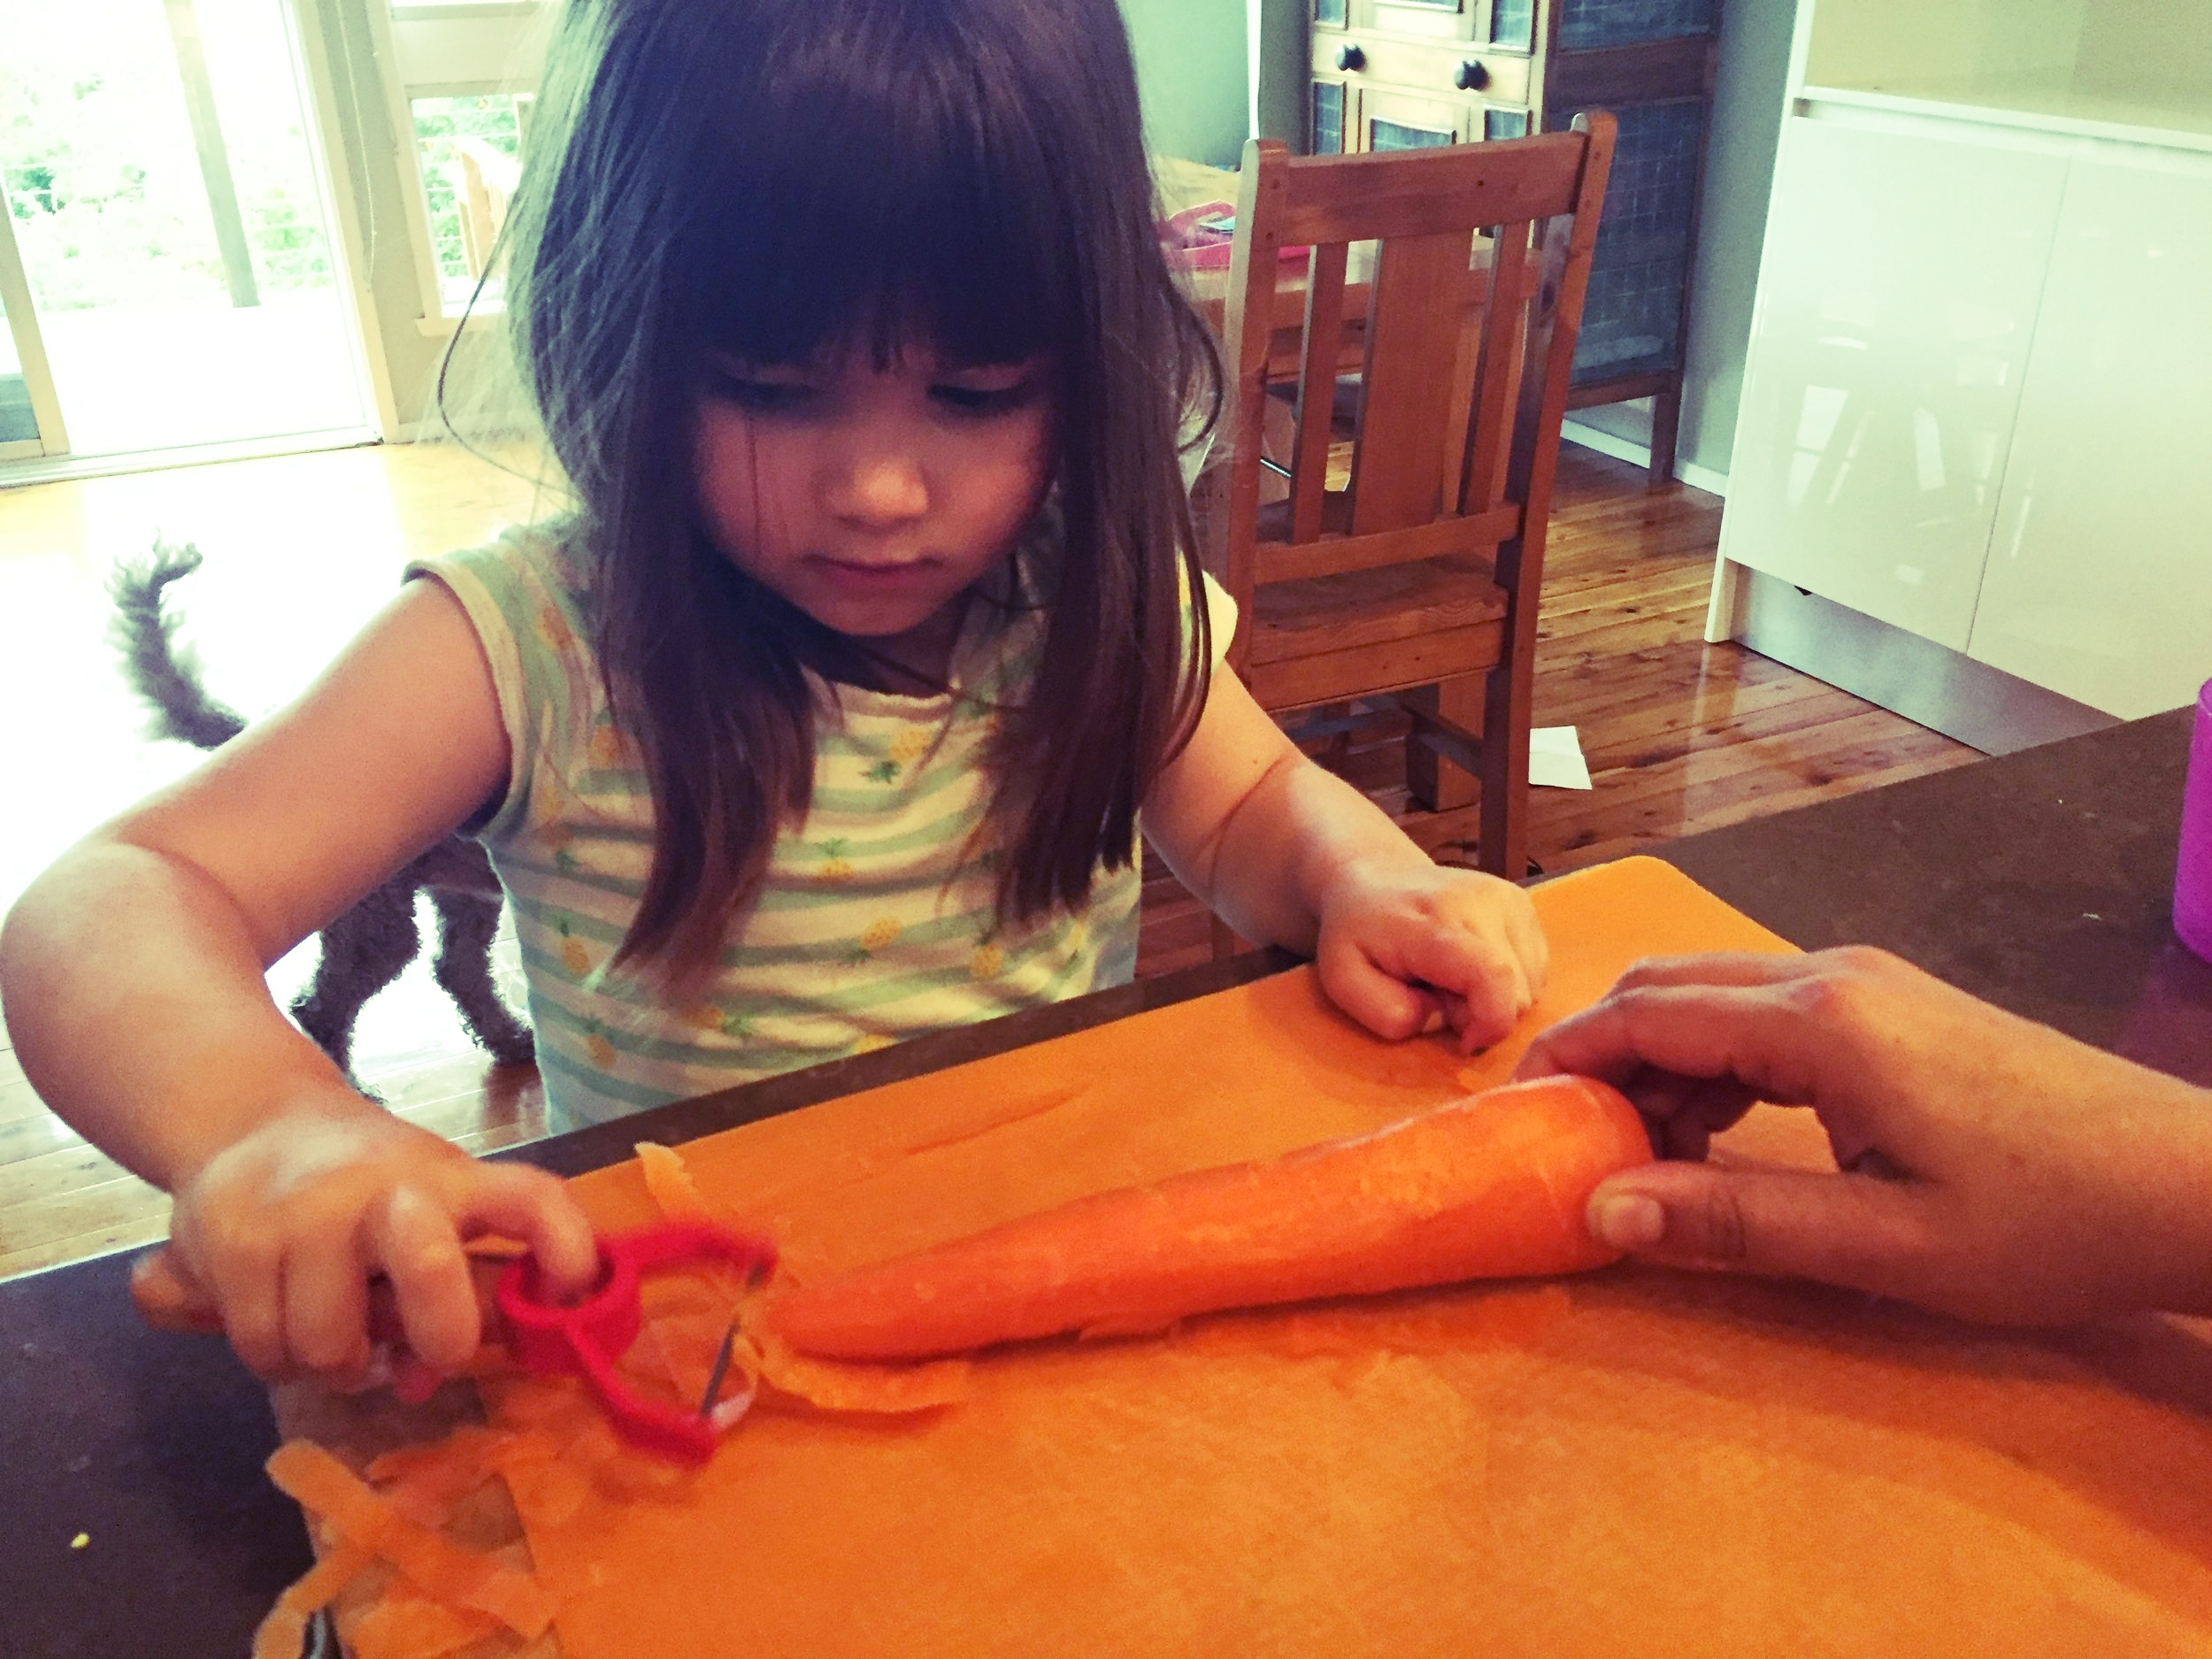 Kids love to help in the kitchen, and Opinel makes is easy with their special childrens range.